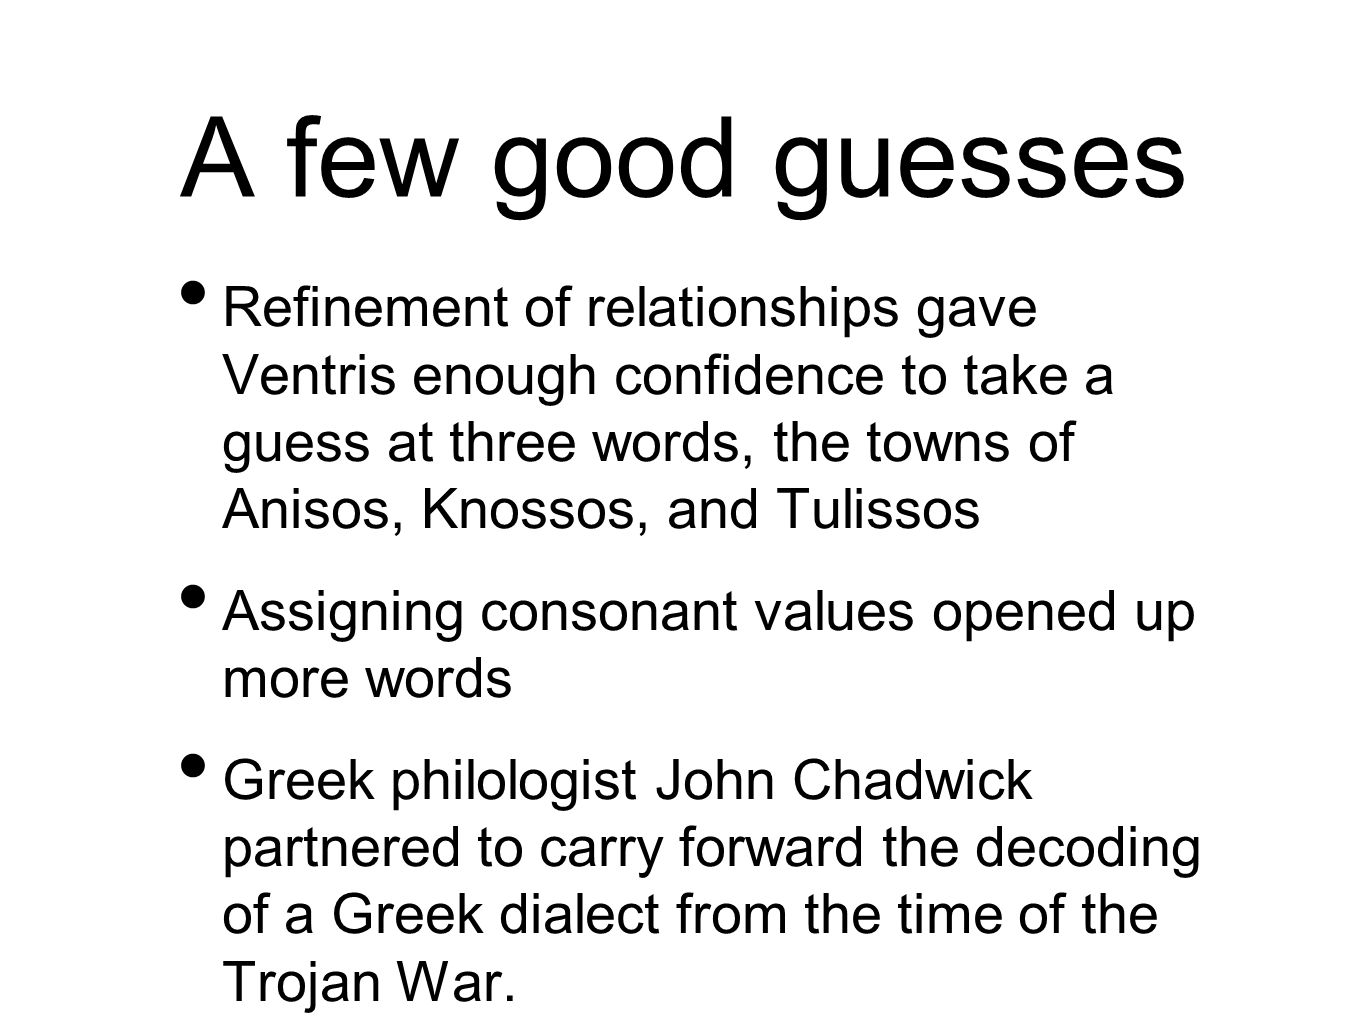 A few good guesses Refinement of relationships gave Ventris enough confidence to take a guess at three words, the towns of Anisos, Knossos, and Tulissos Assigning consonant values opened up more words Greek philologist John Chadwick partnered to carry forward the decoding of a Greek dialect from the time of the Trojan War.